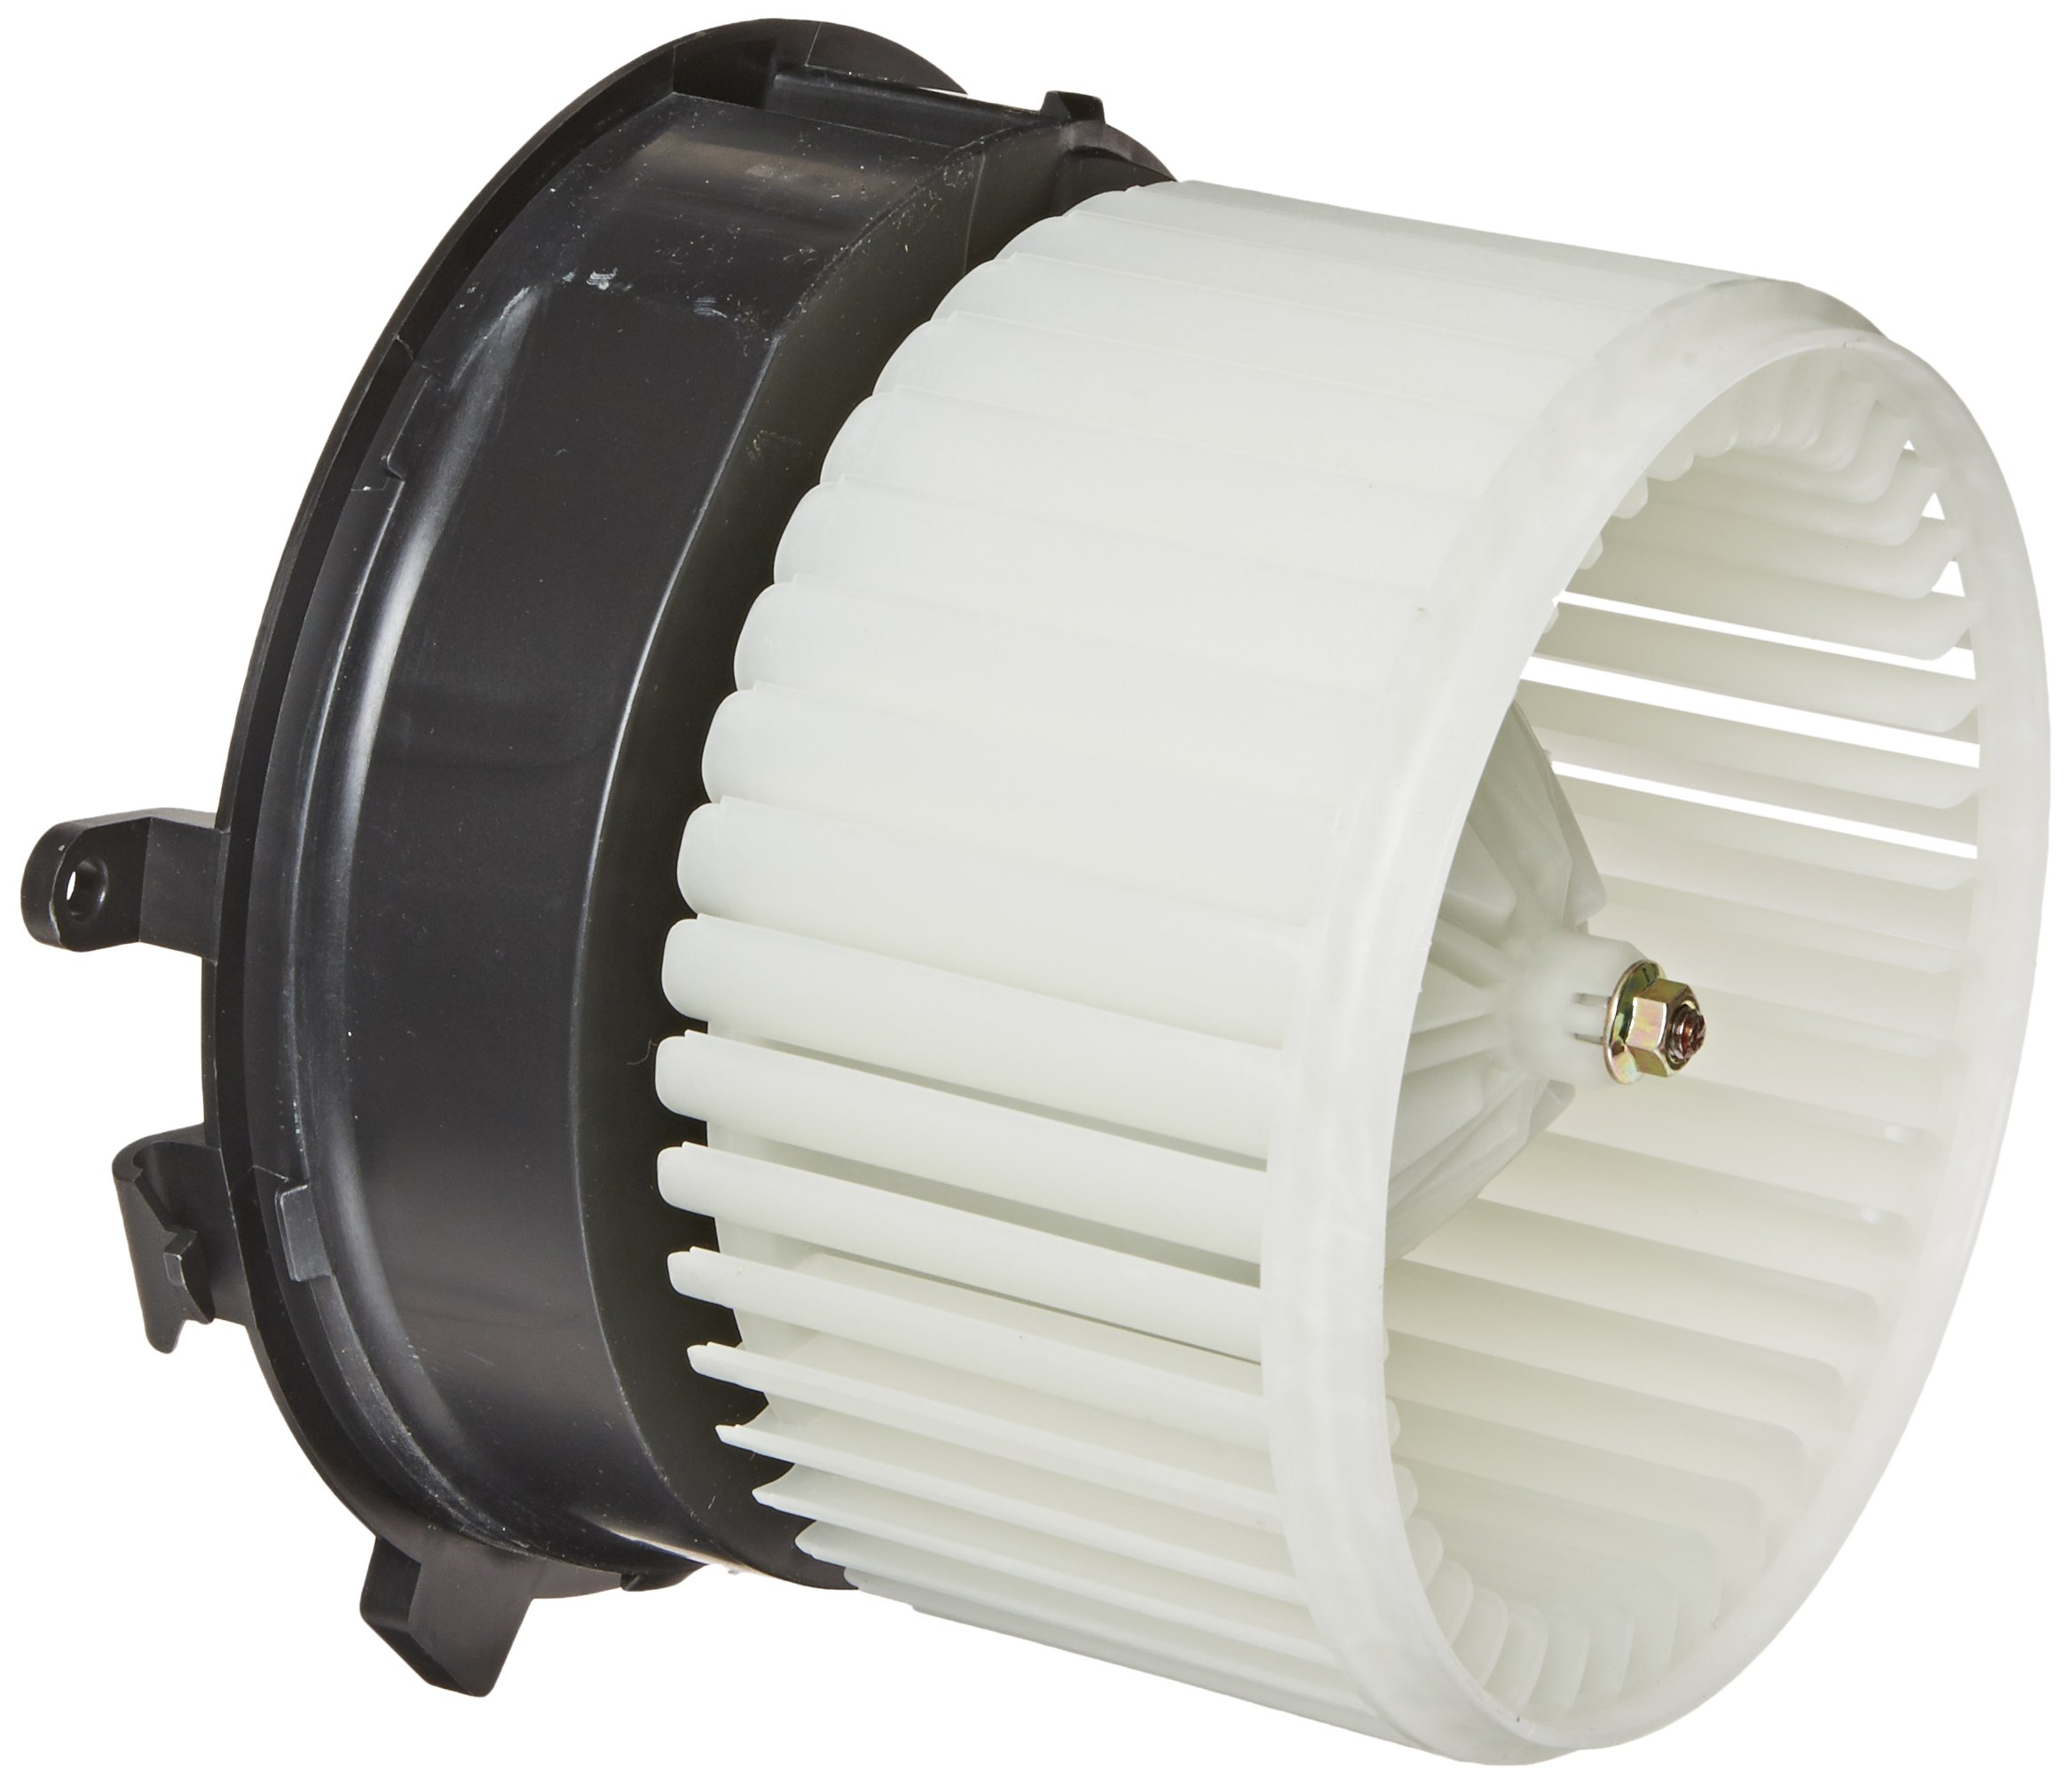 TYC 700253 Replacement Blower Assembly for Nissan Rogue by TYC